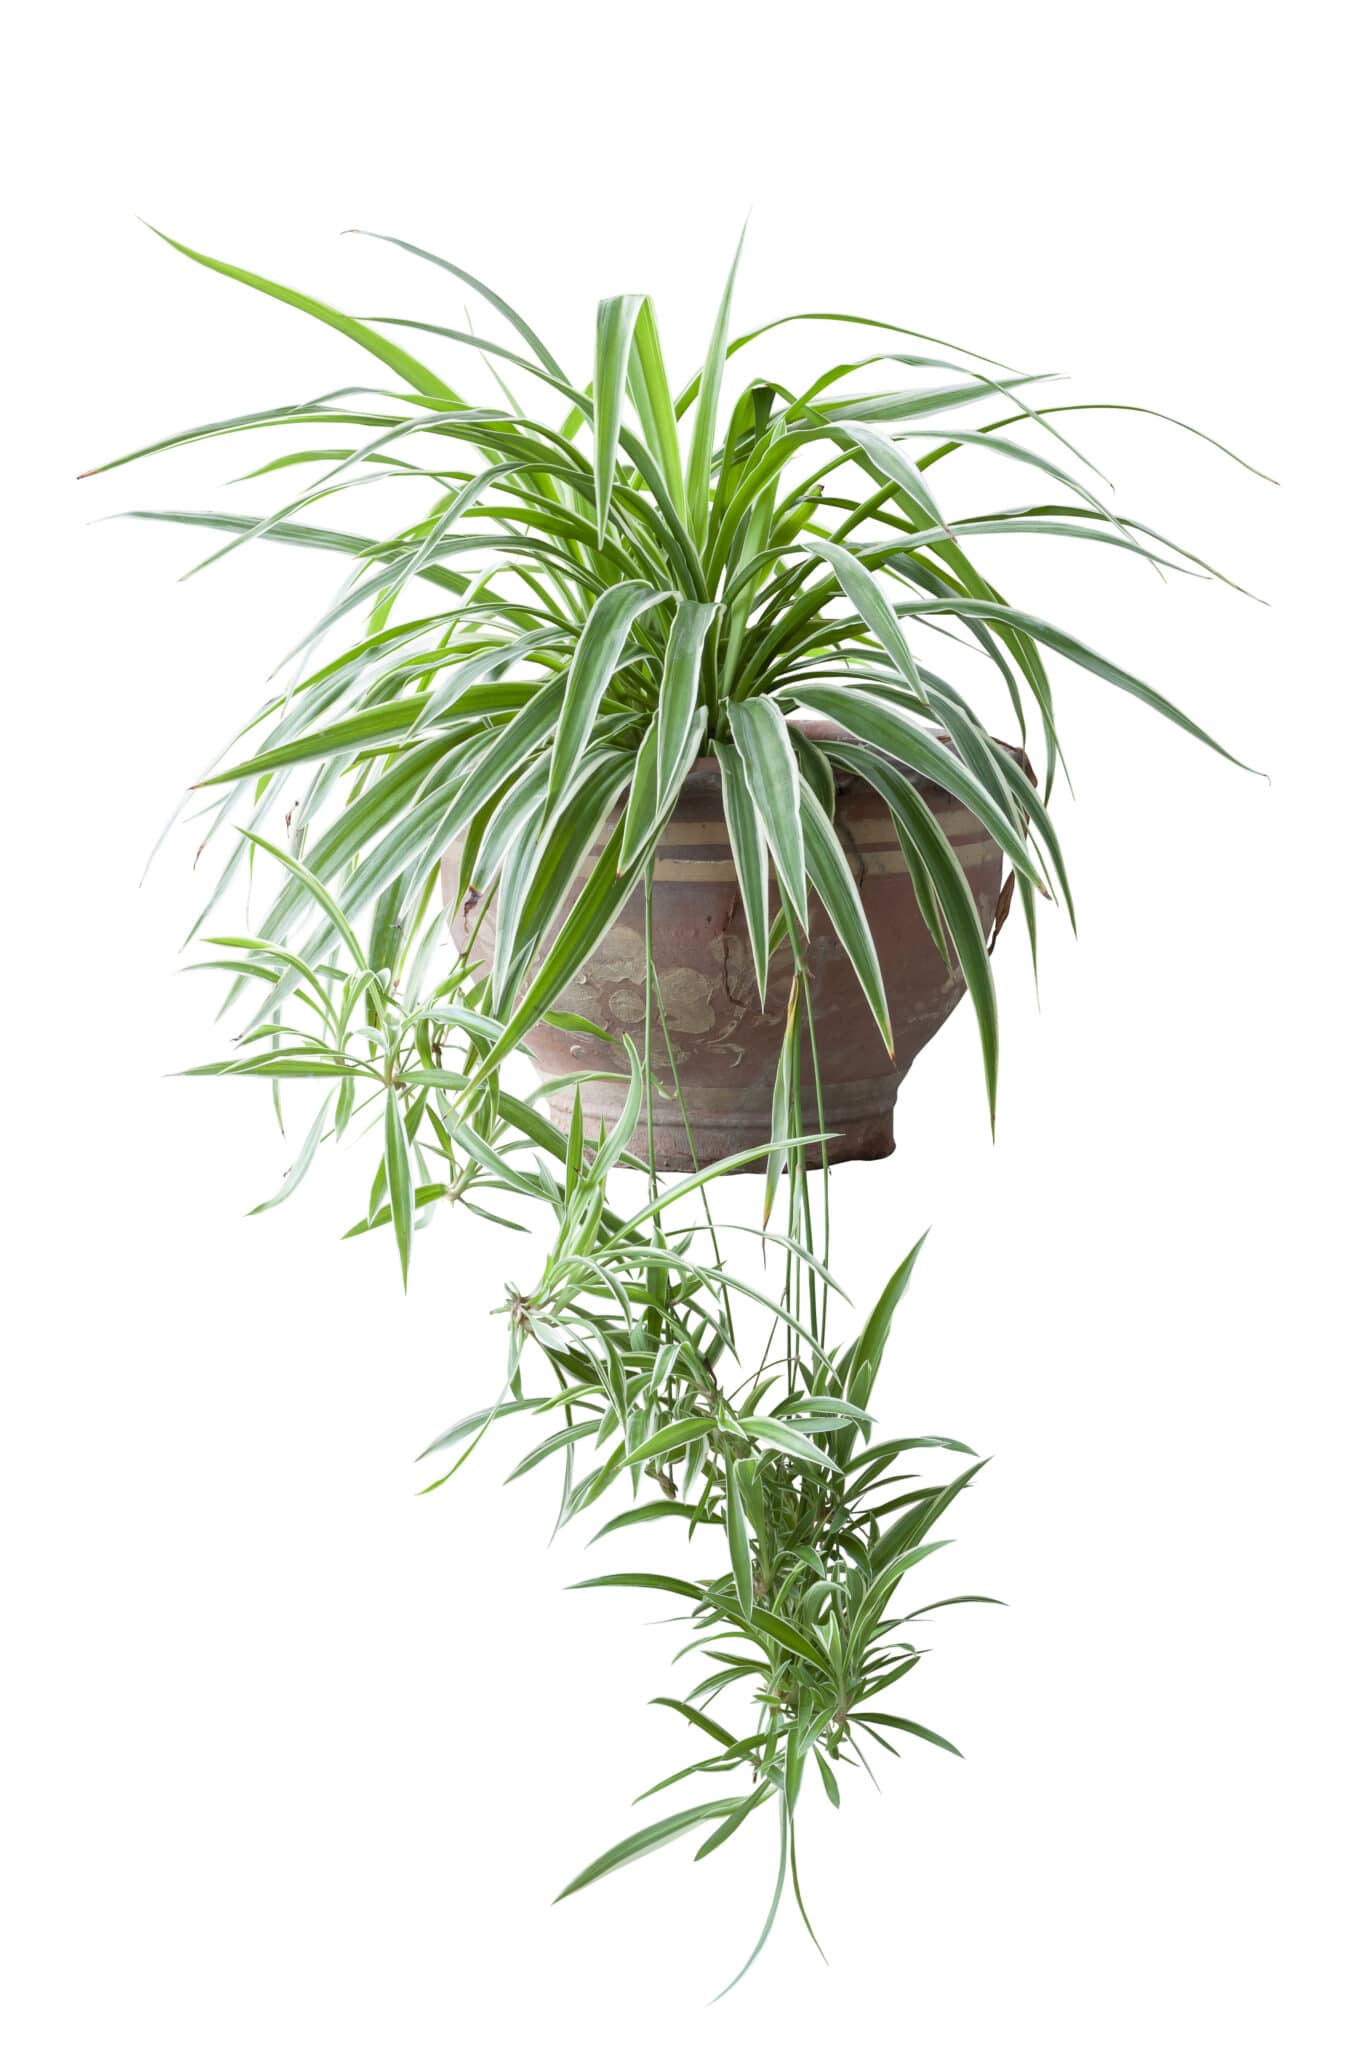 A hanging spider plant.